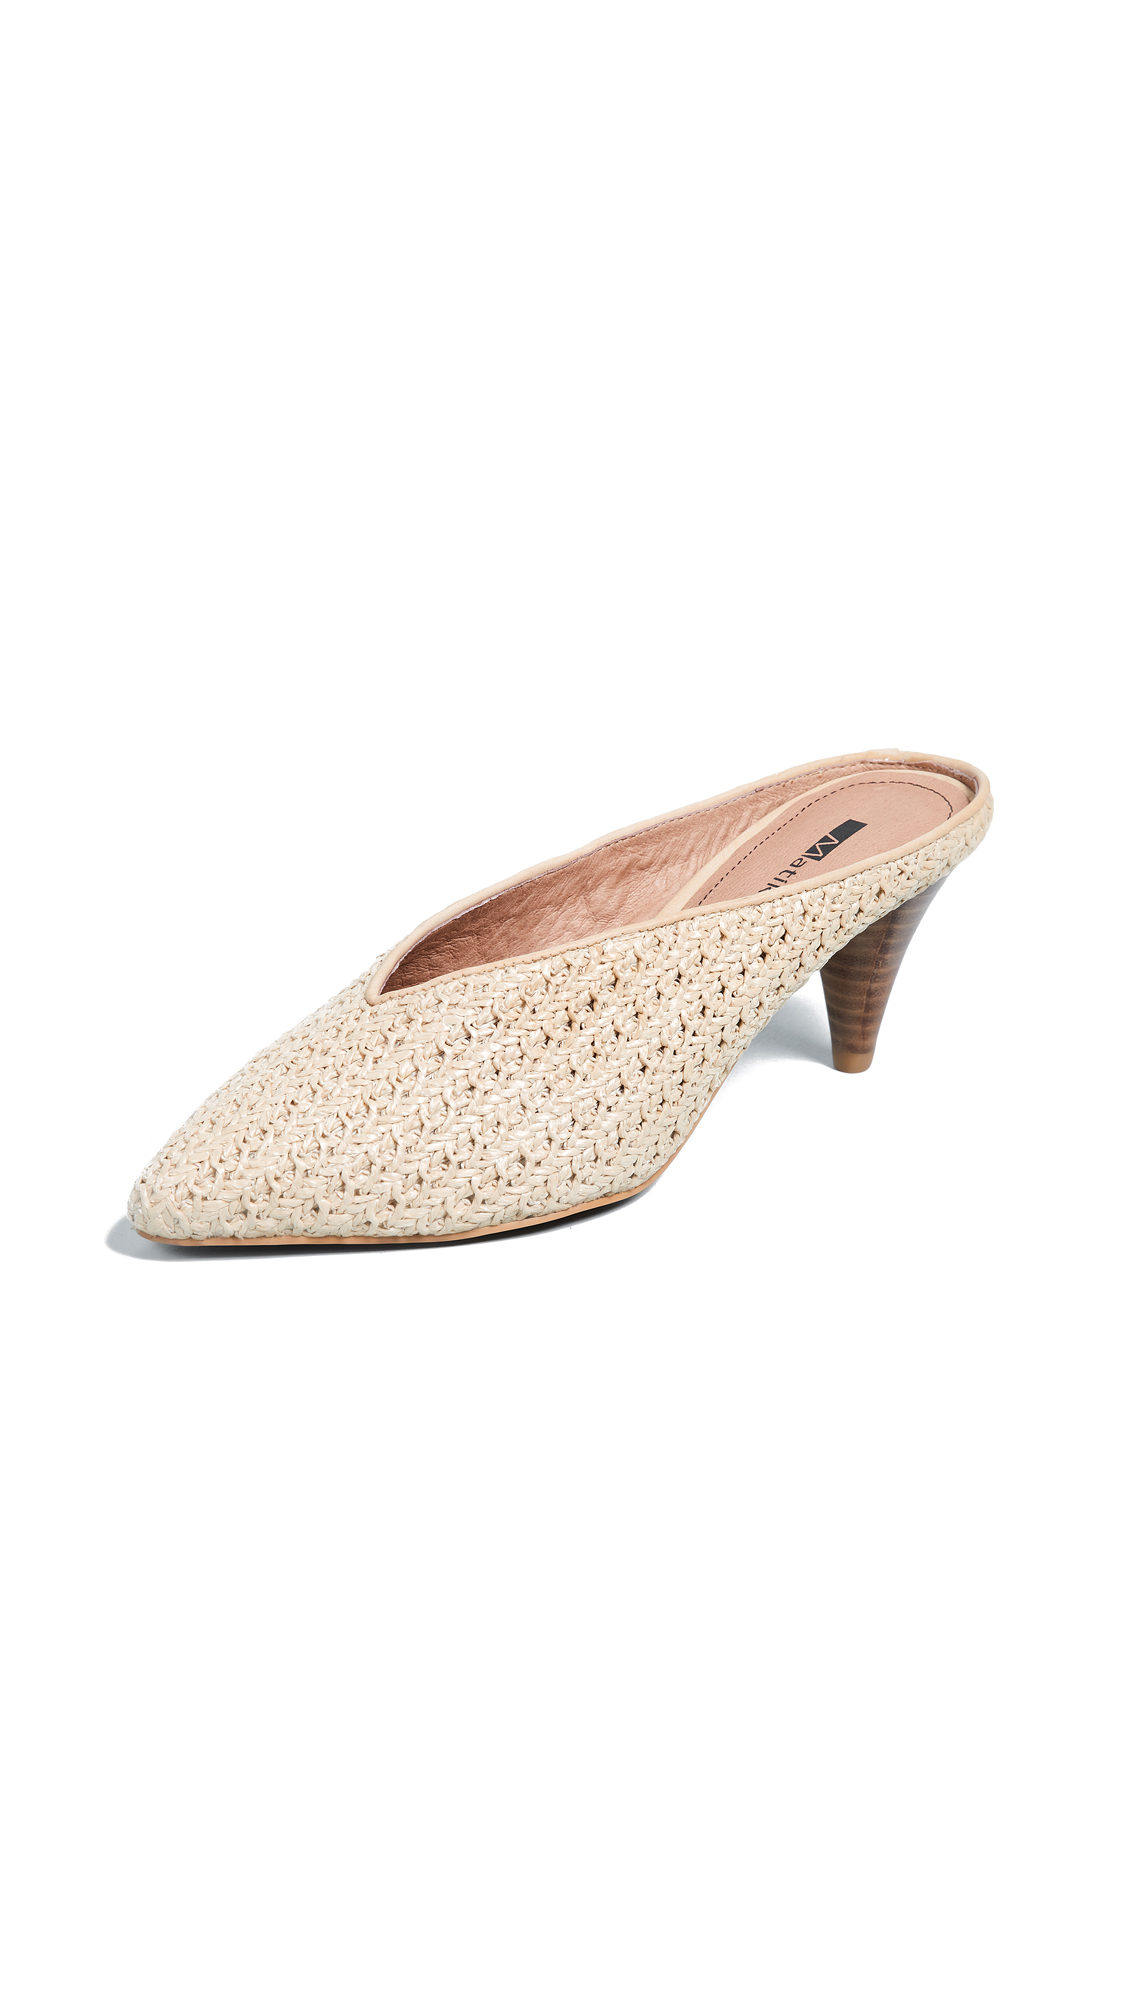 Matiko Lisa Point Toe Mules - Light Brown